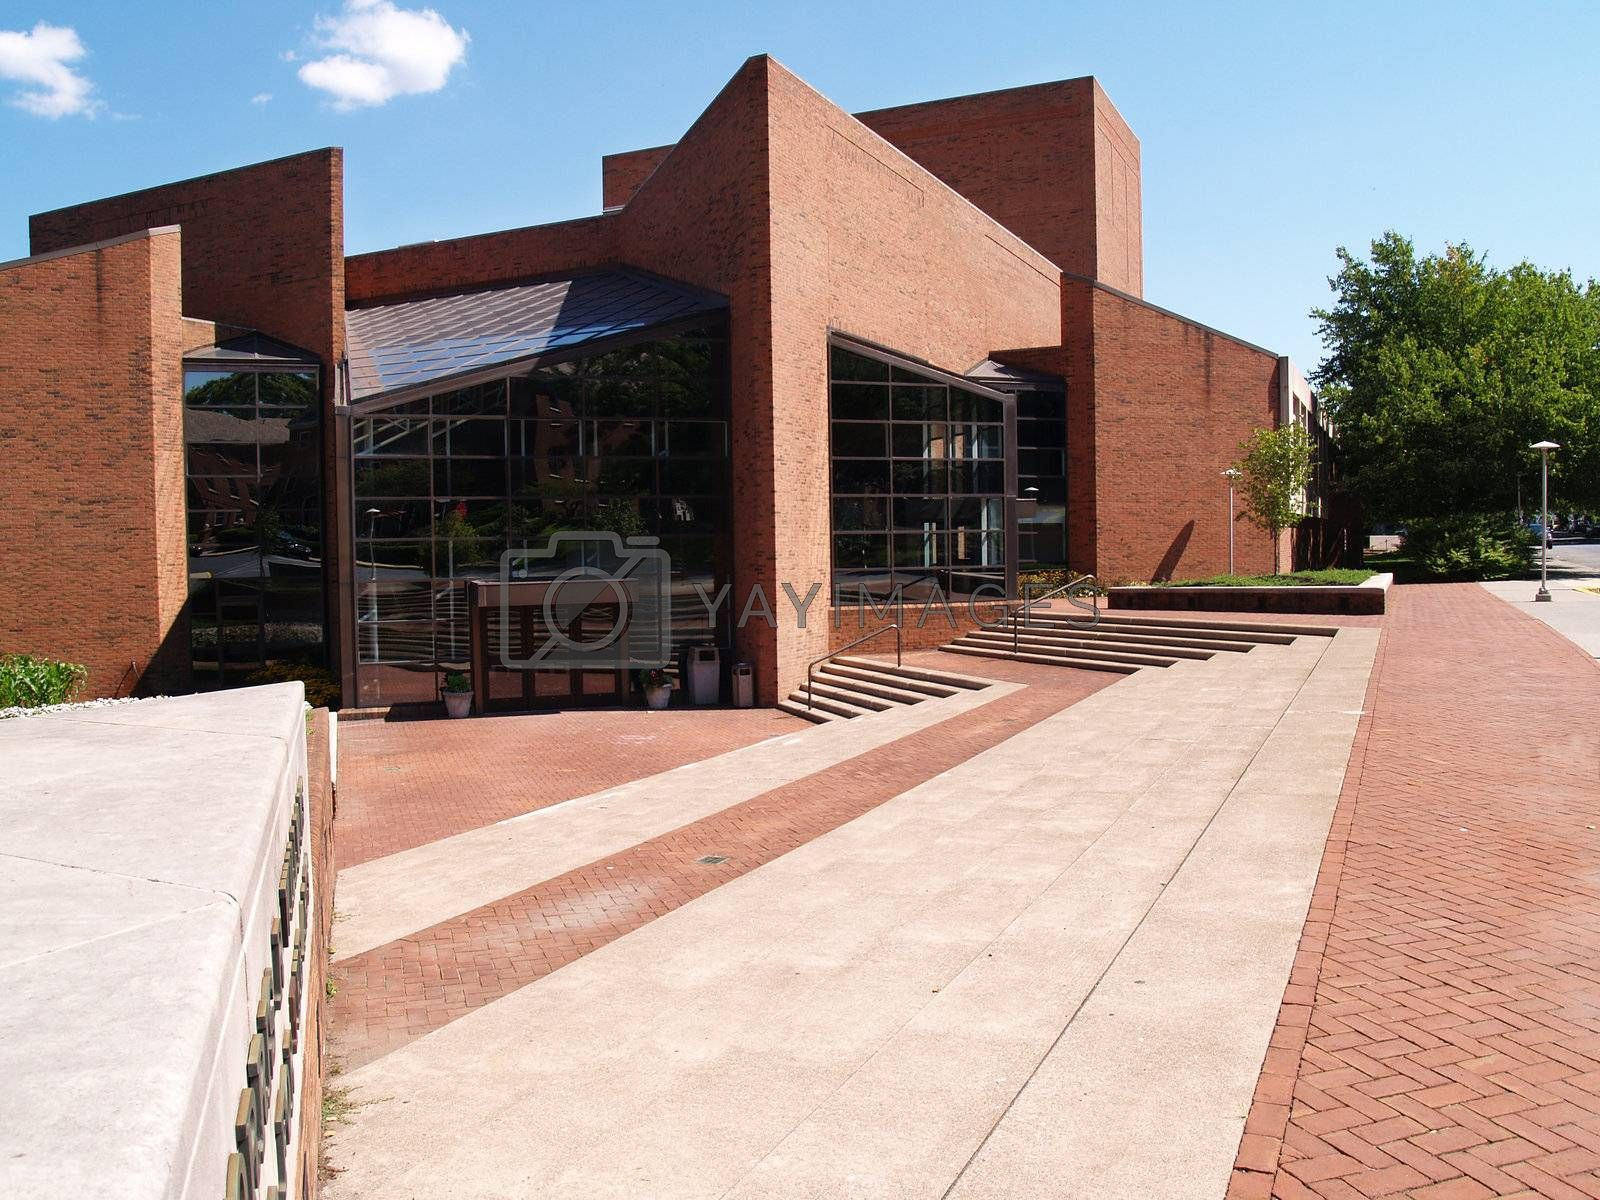 Williams Center for the Arts building on the campus of Lafayette College in Easton, Pennsylvania.